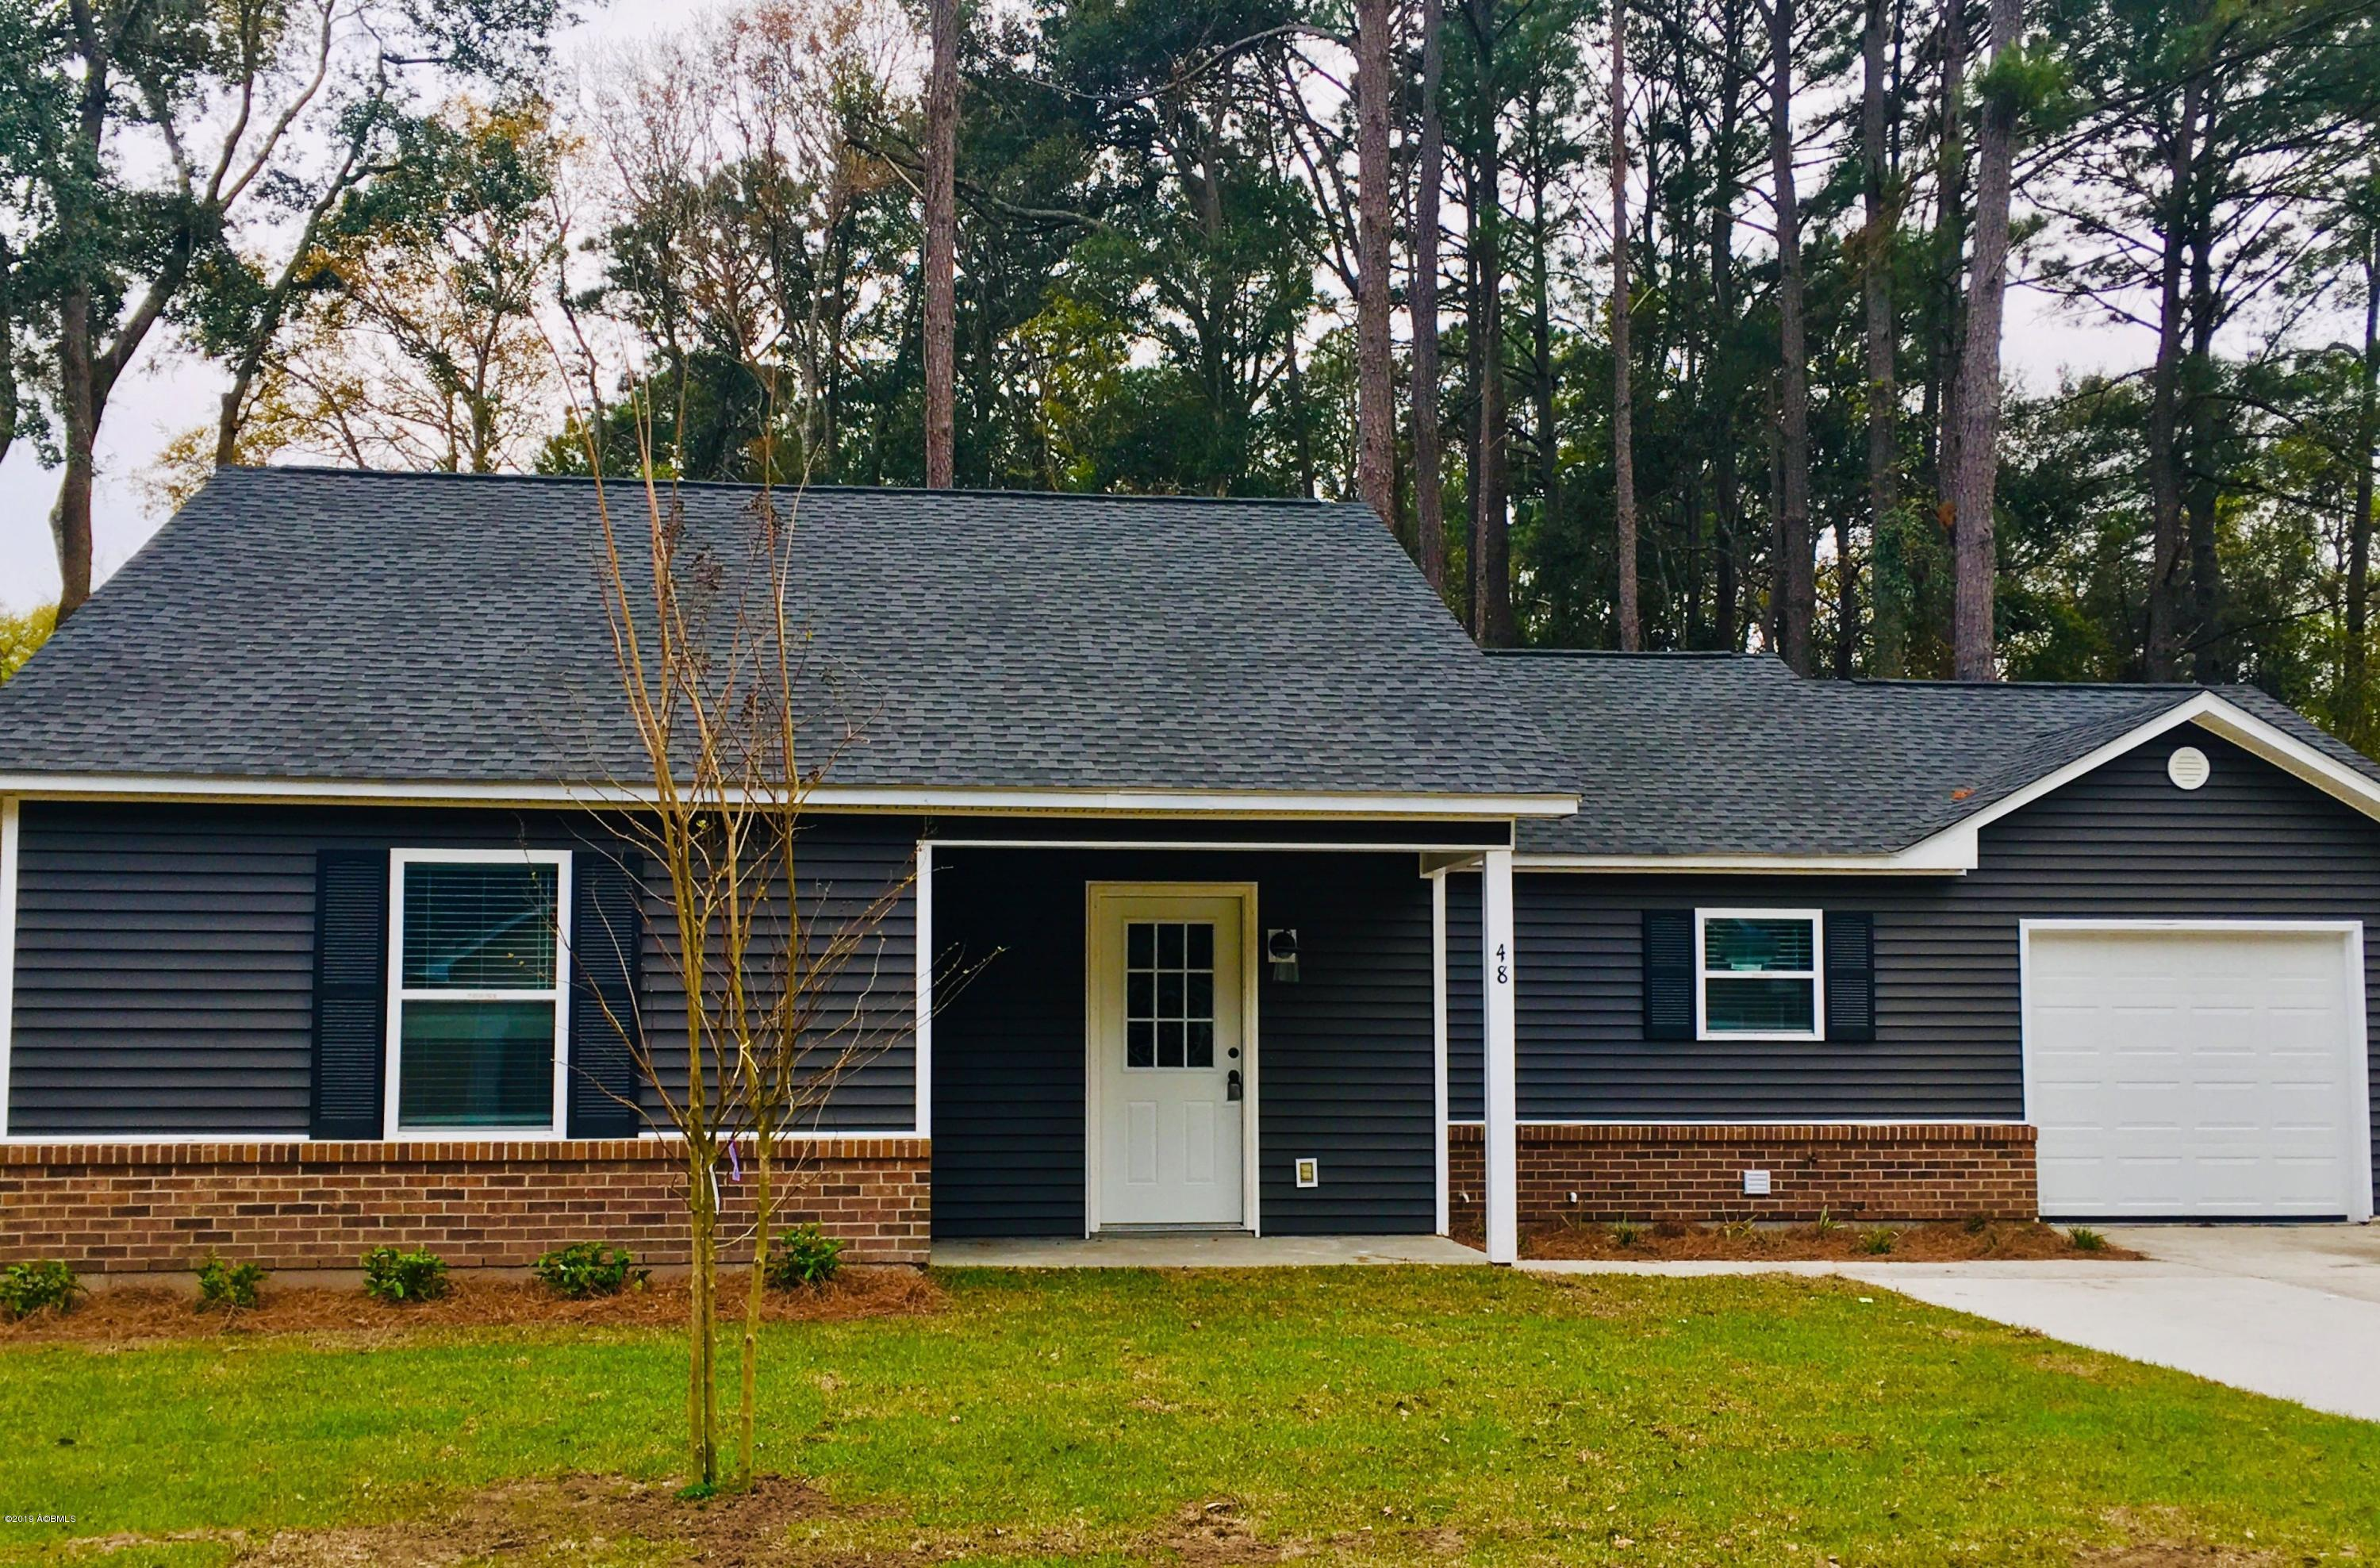 Photo of 48 Brindlewood Drive, Beaufort, SC 29907